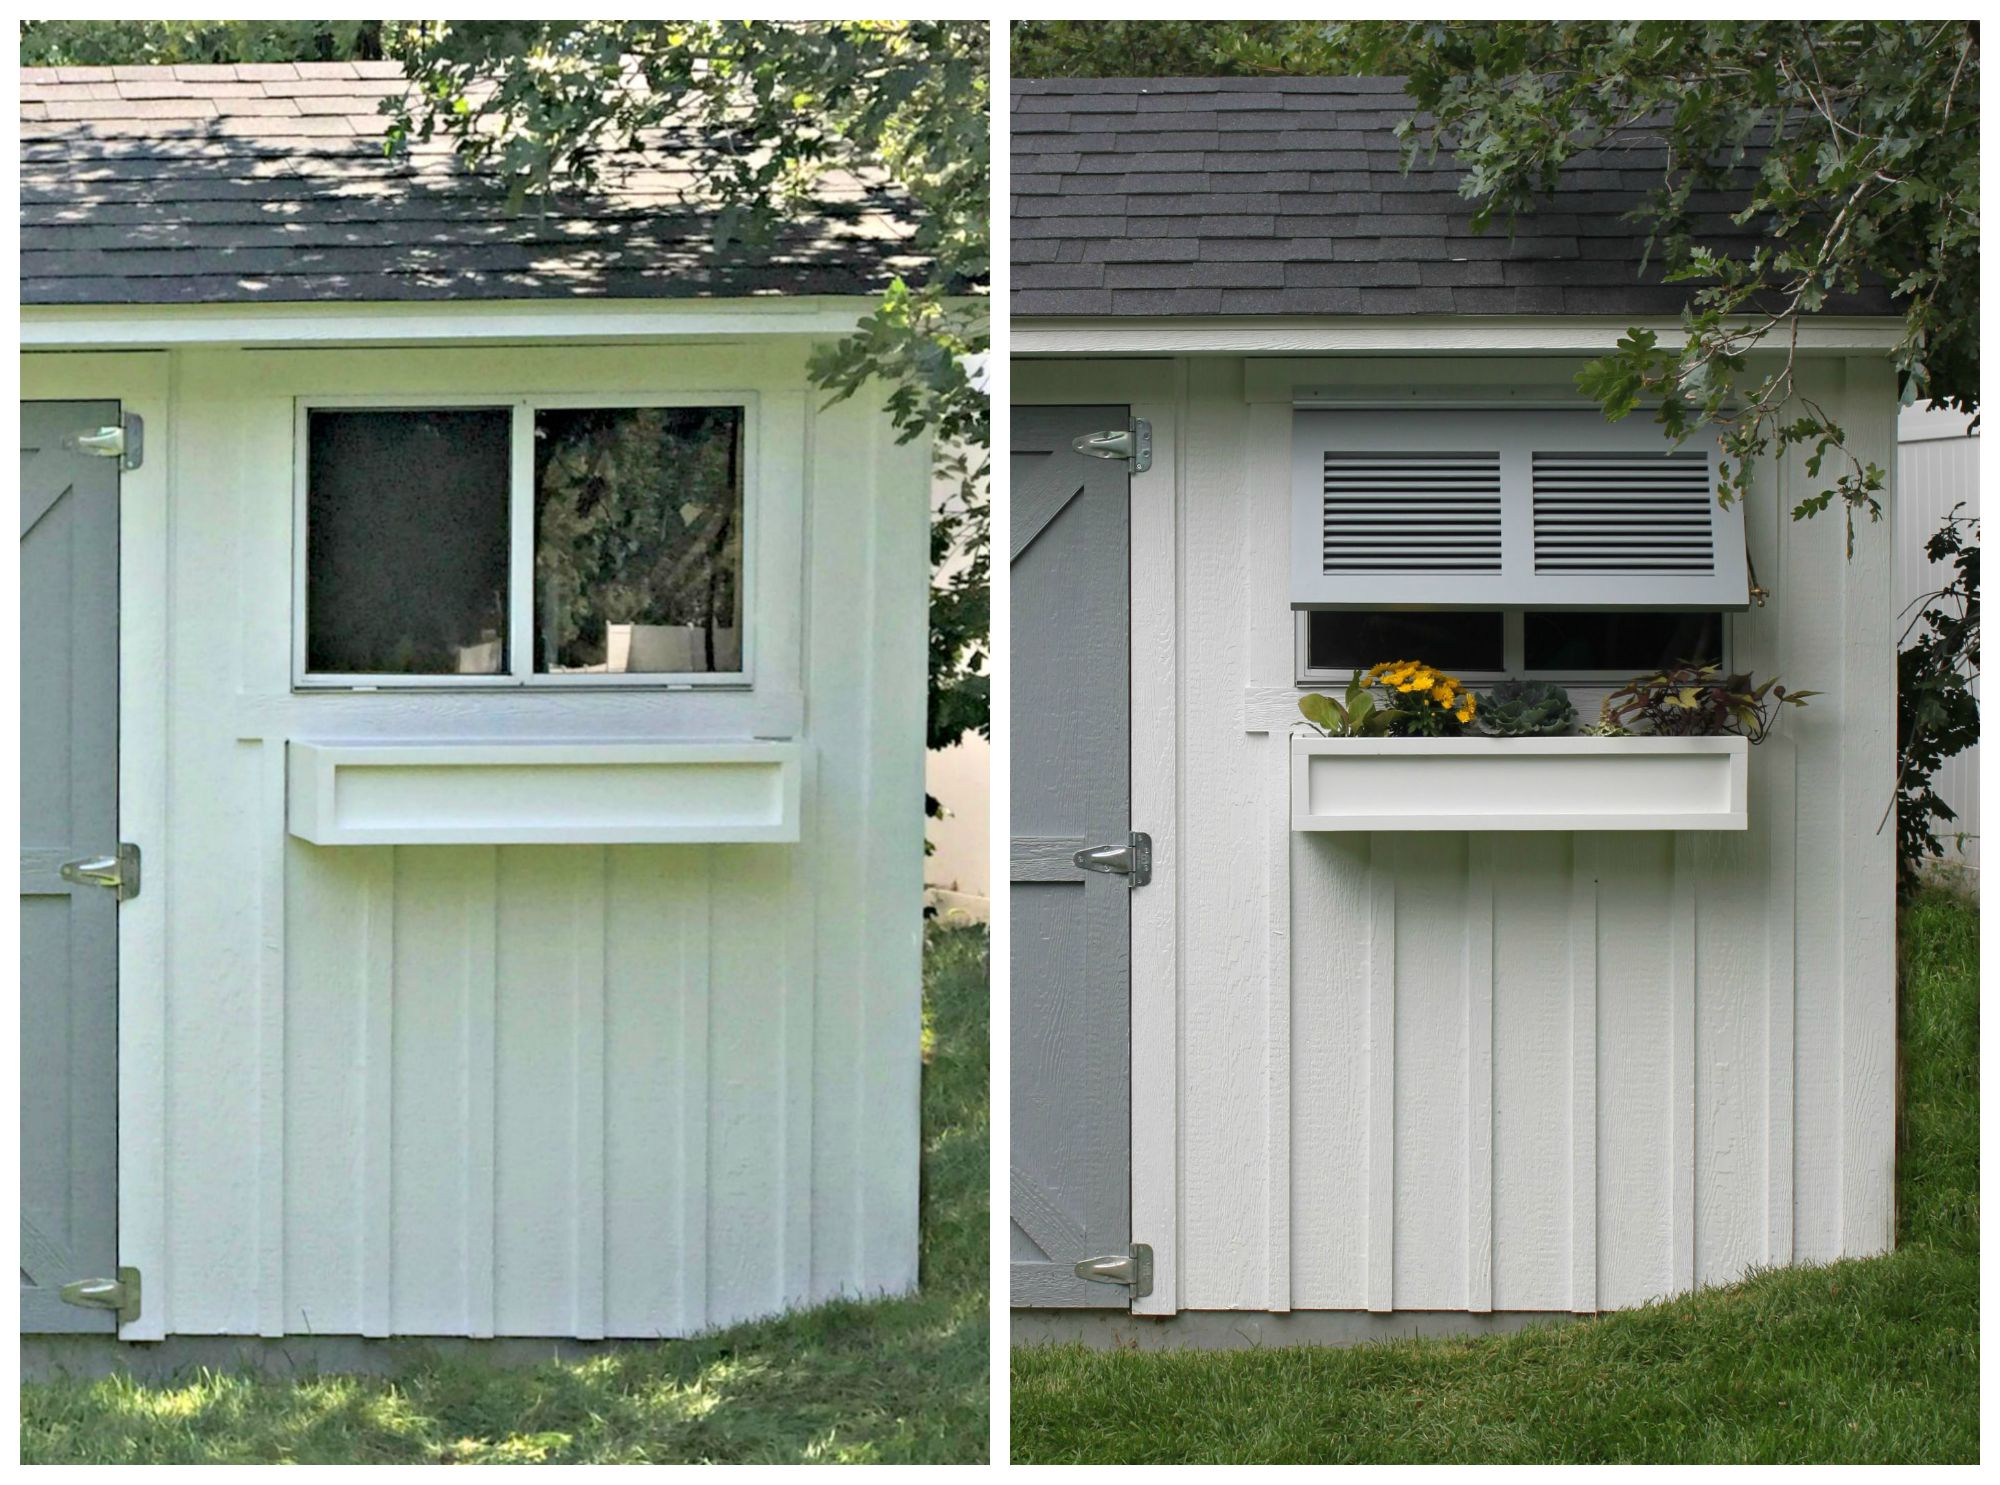 Diy bahama shutters do it your self for Bermuda style exterior shutters